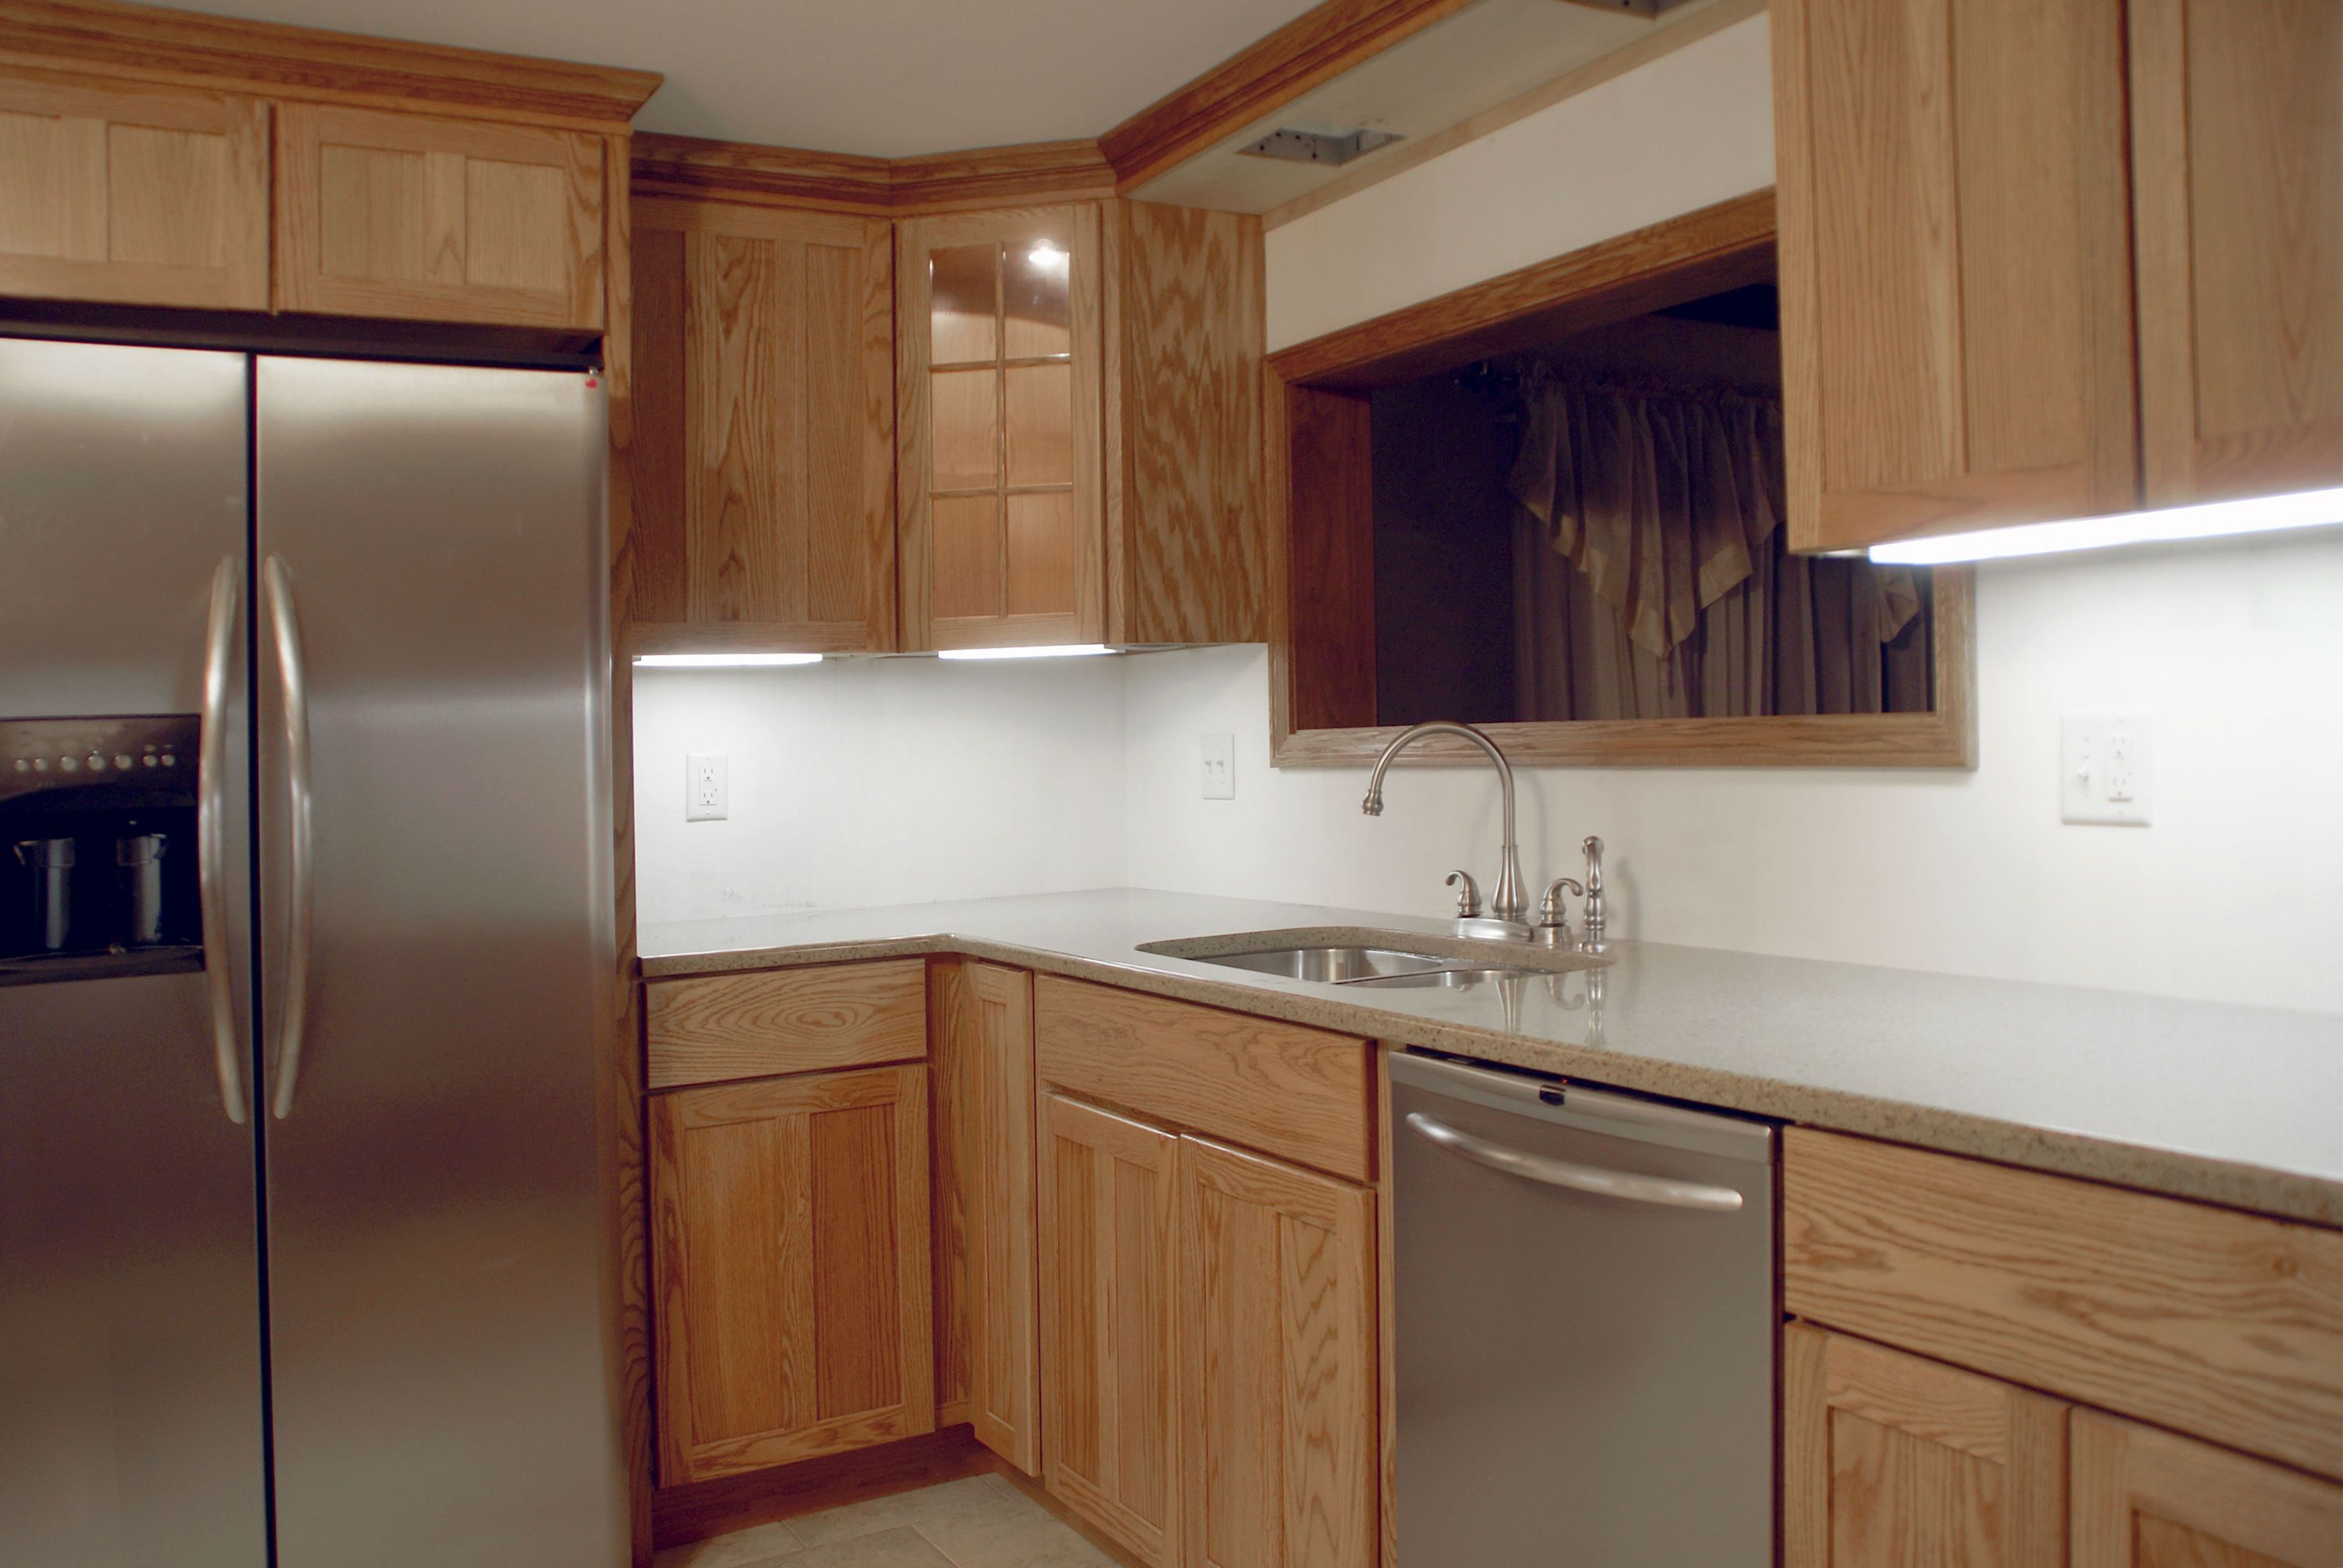 Refacing or replacing kitchen cabinets for New ideas for kitchen cabinets